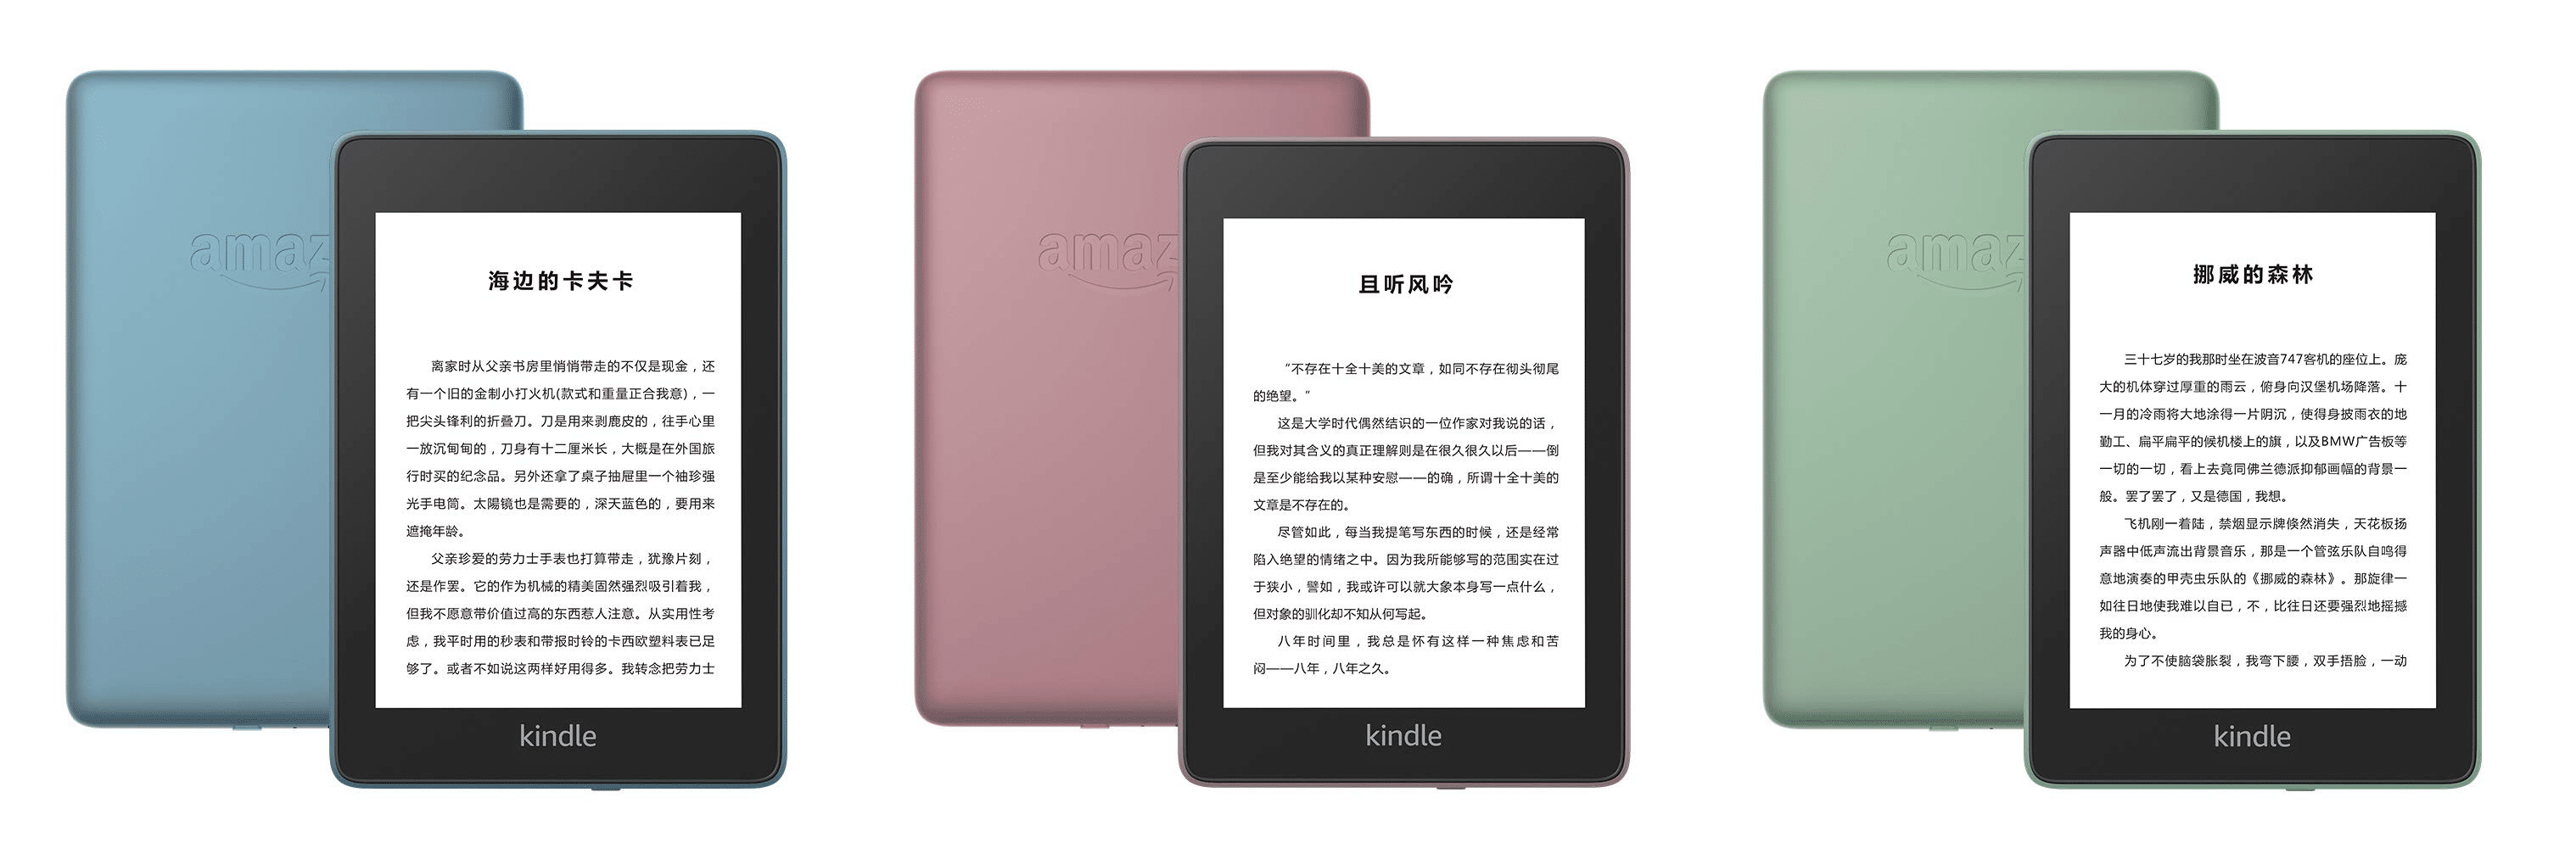 new-kindle-colors.png